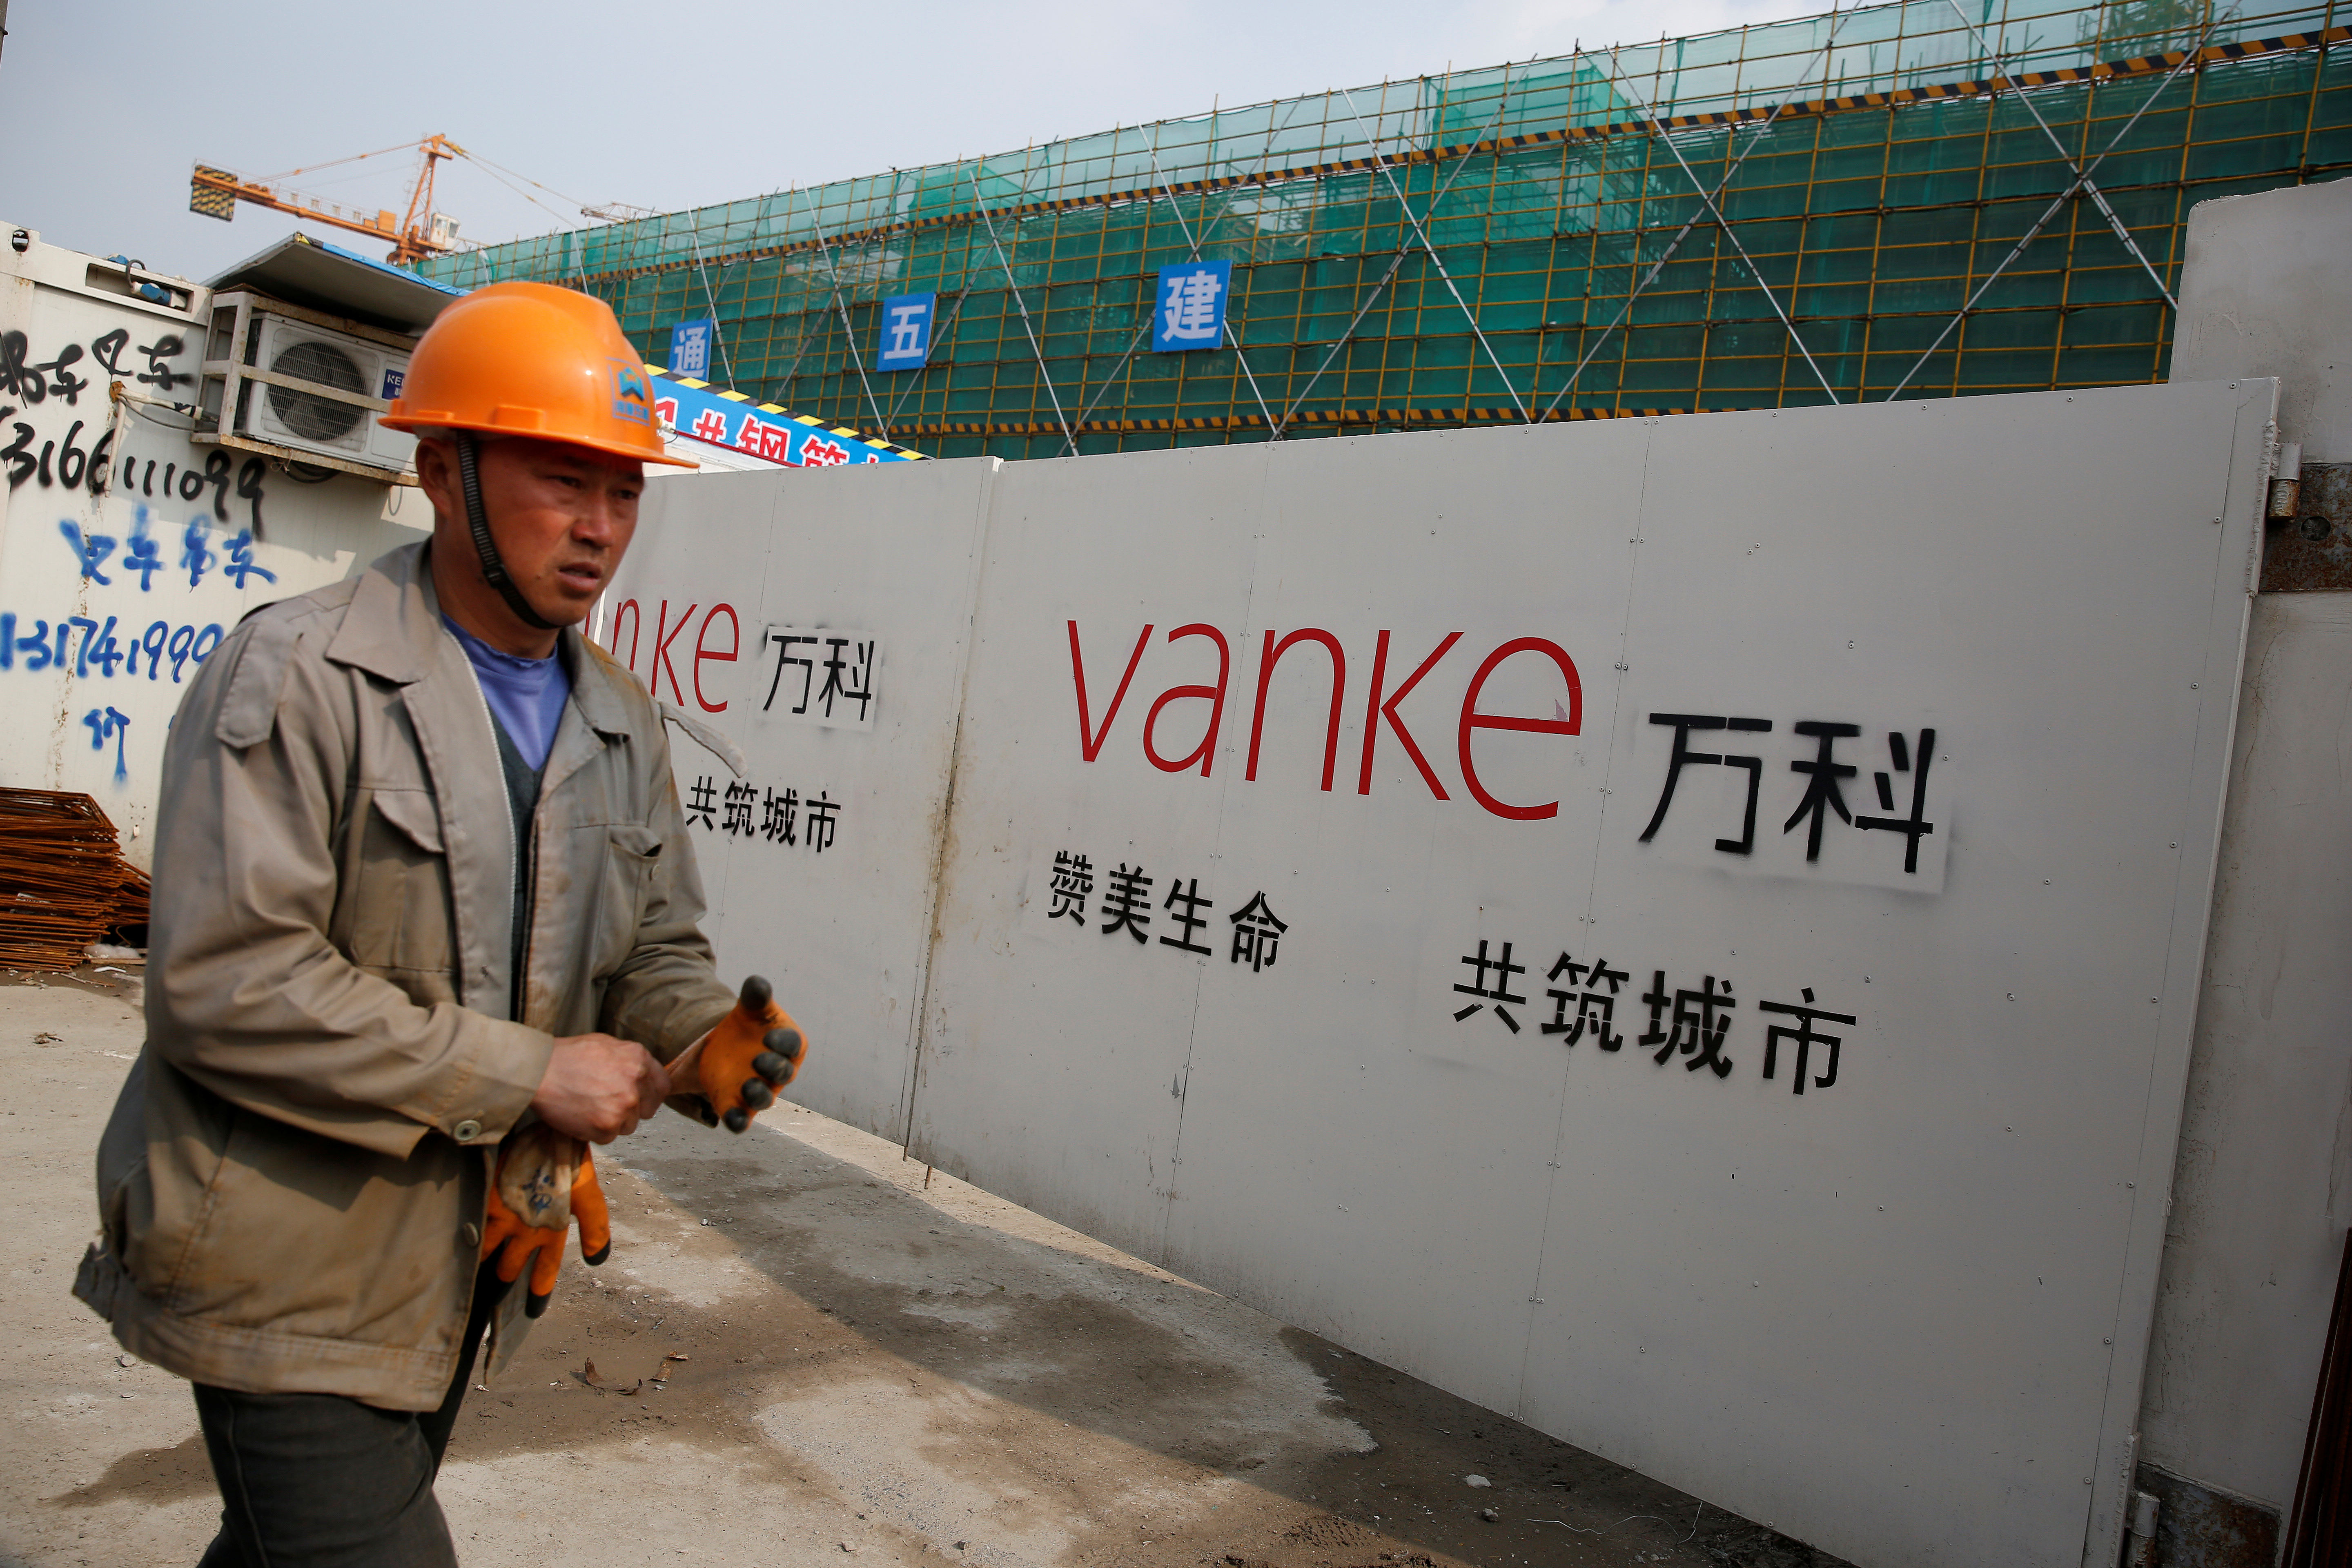 A person walks past by a gate with a sign of Vanke at a construction site in Shanghai, China, March 21, 2017.